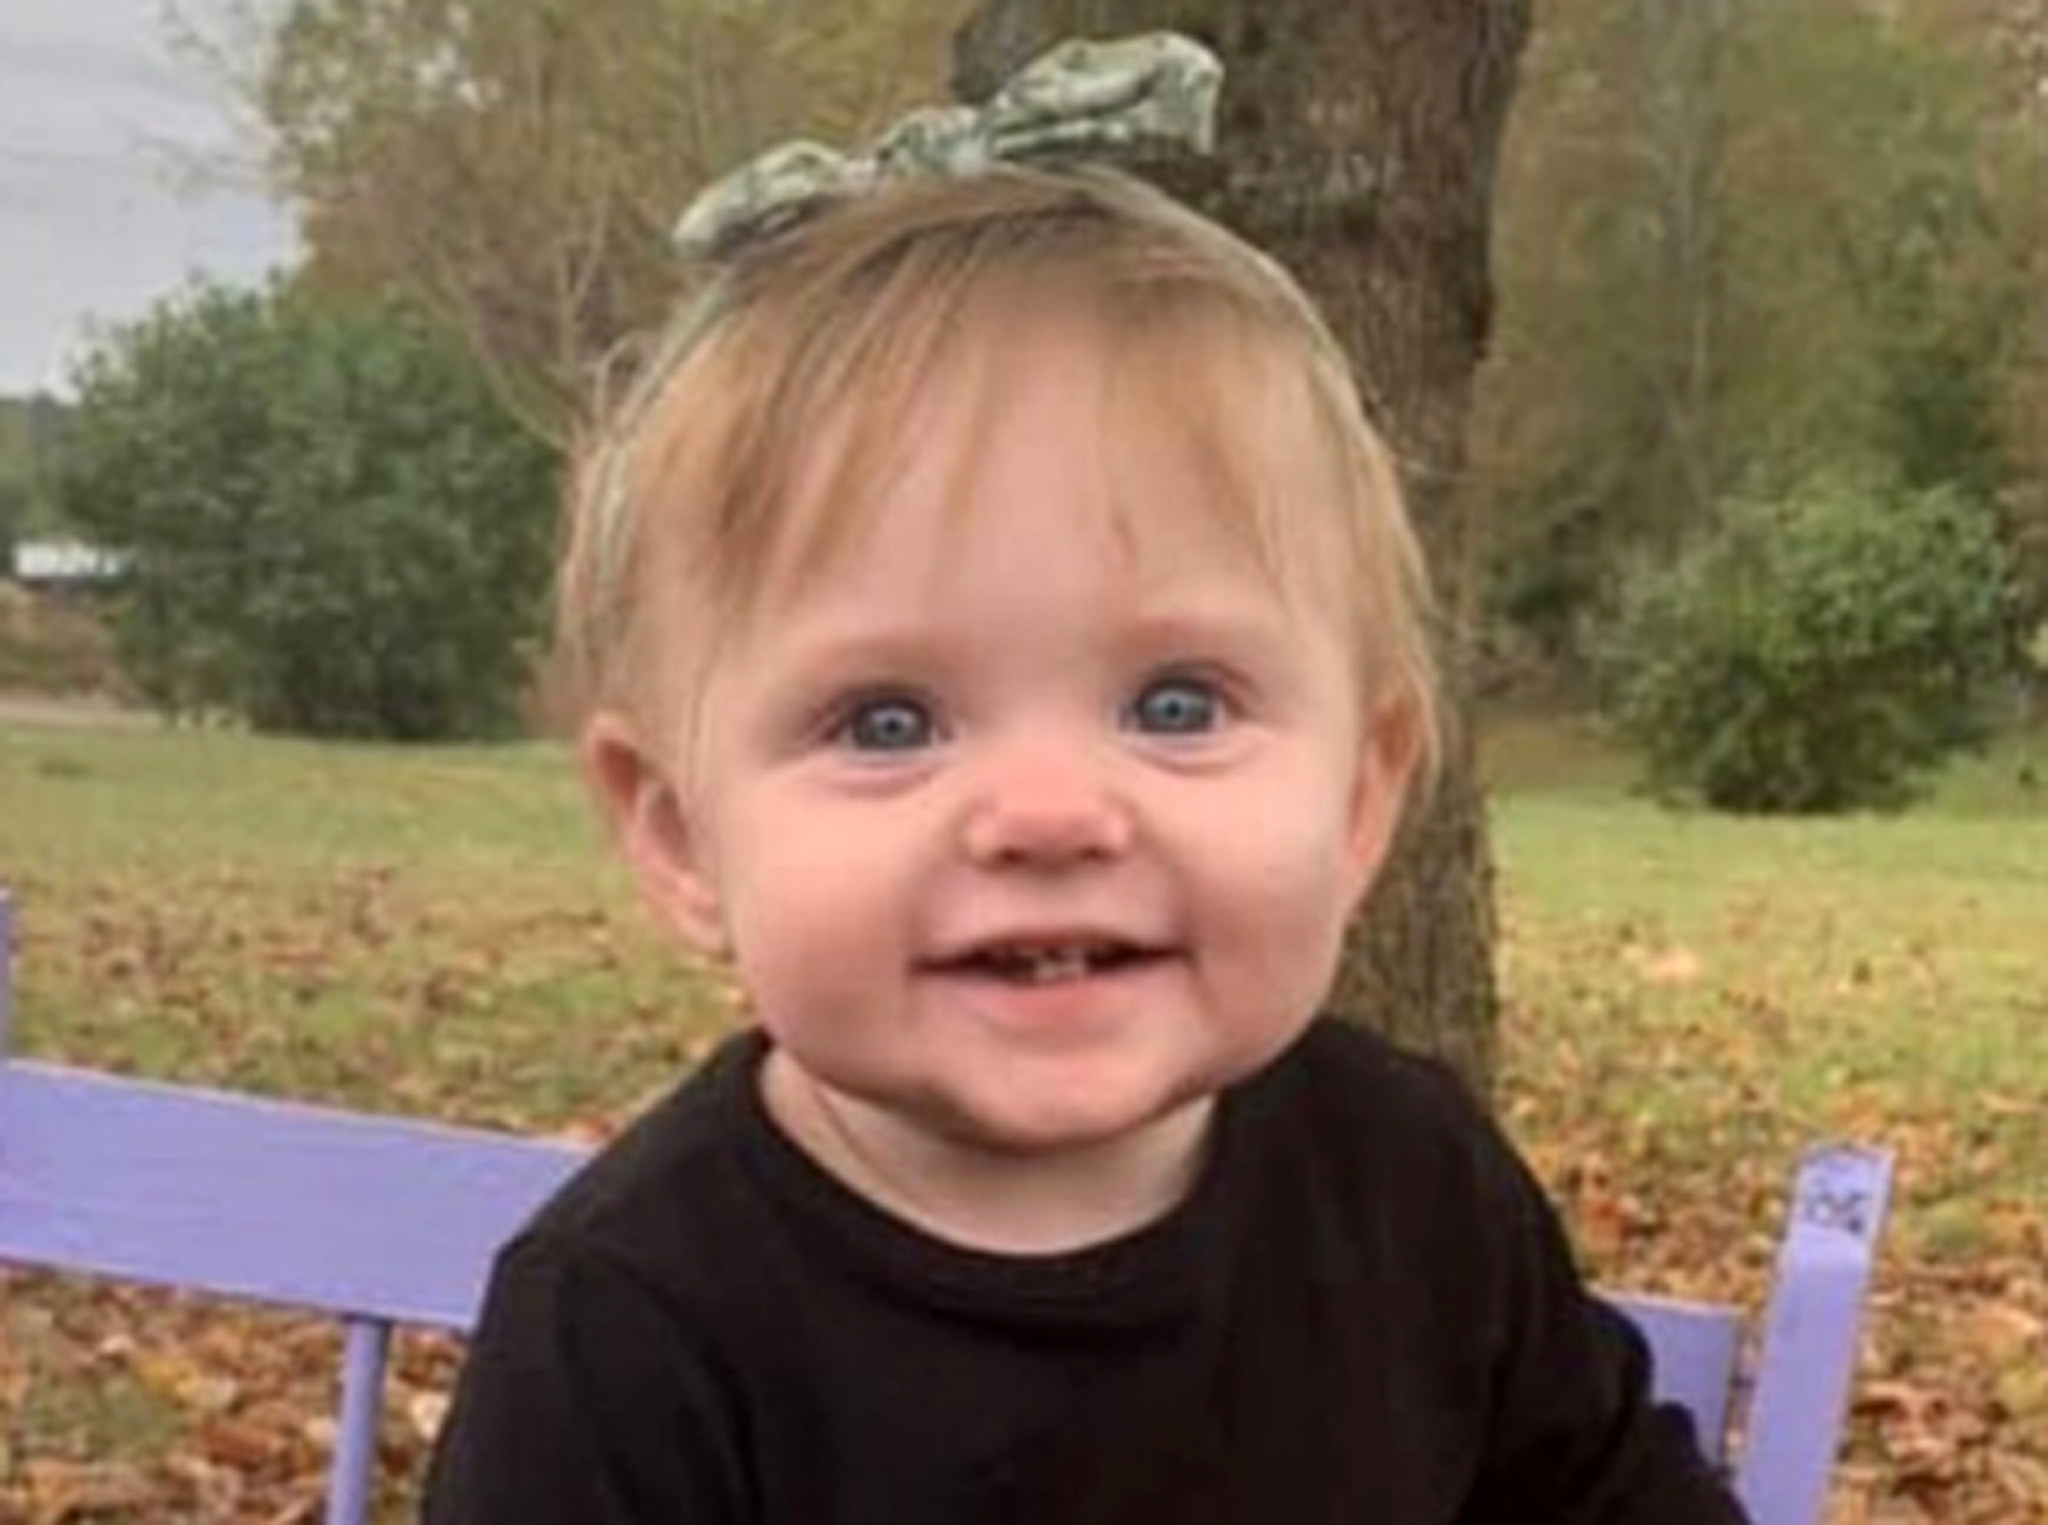 Two arrested in connection to disappearance of 15-month-old Tennessee girl